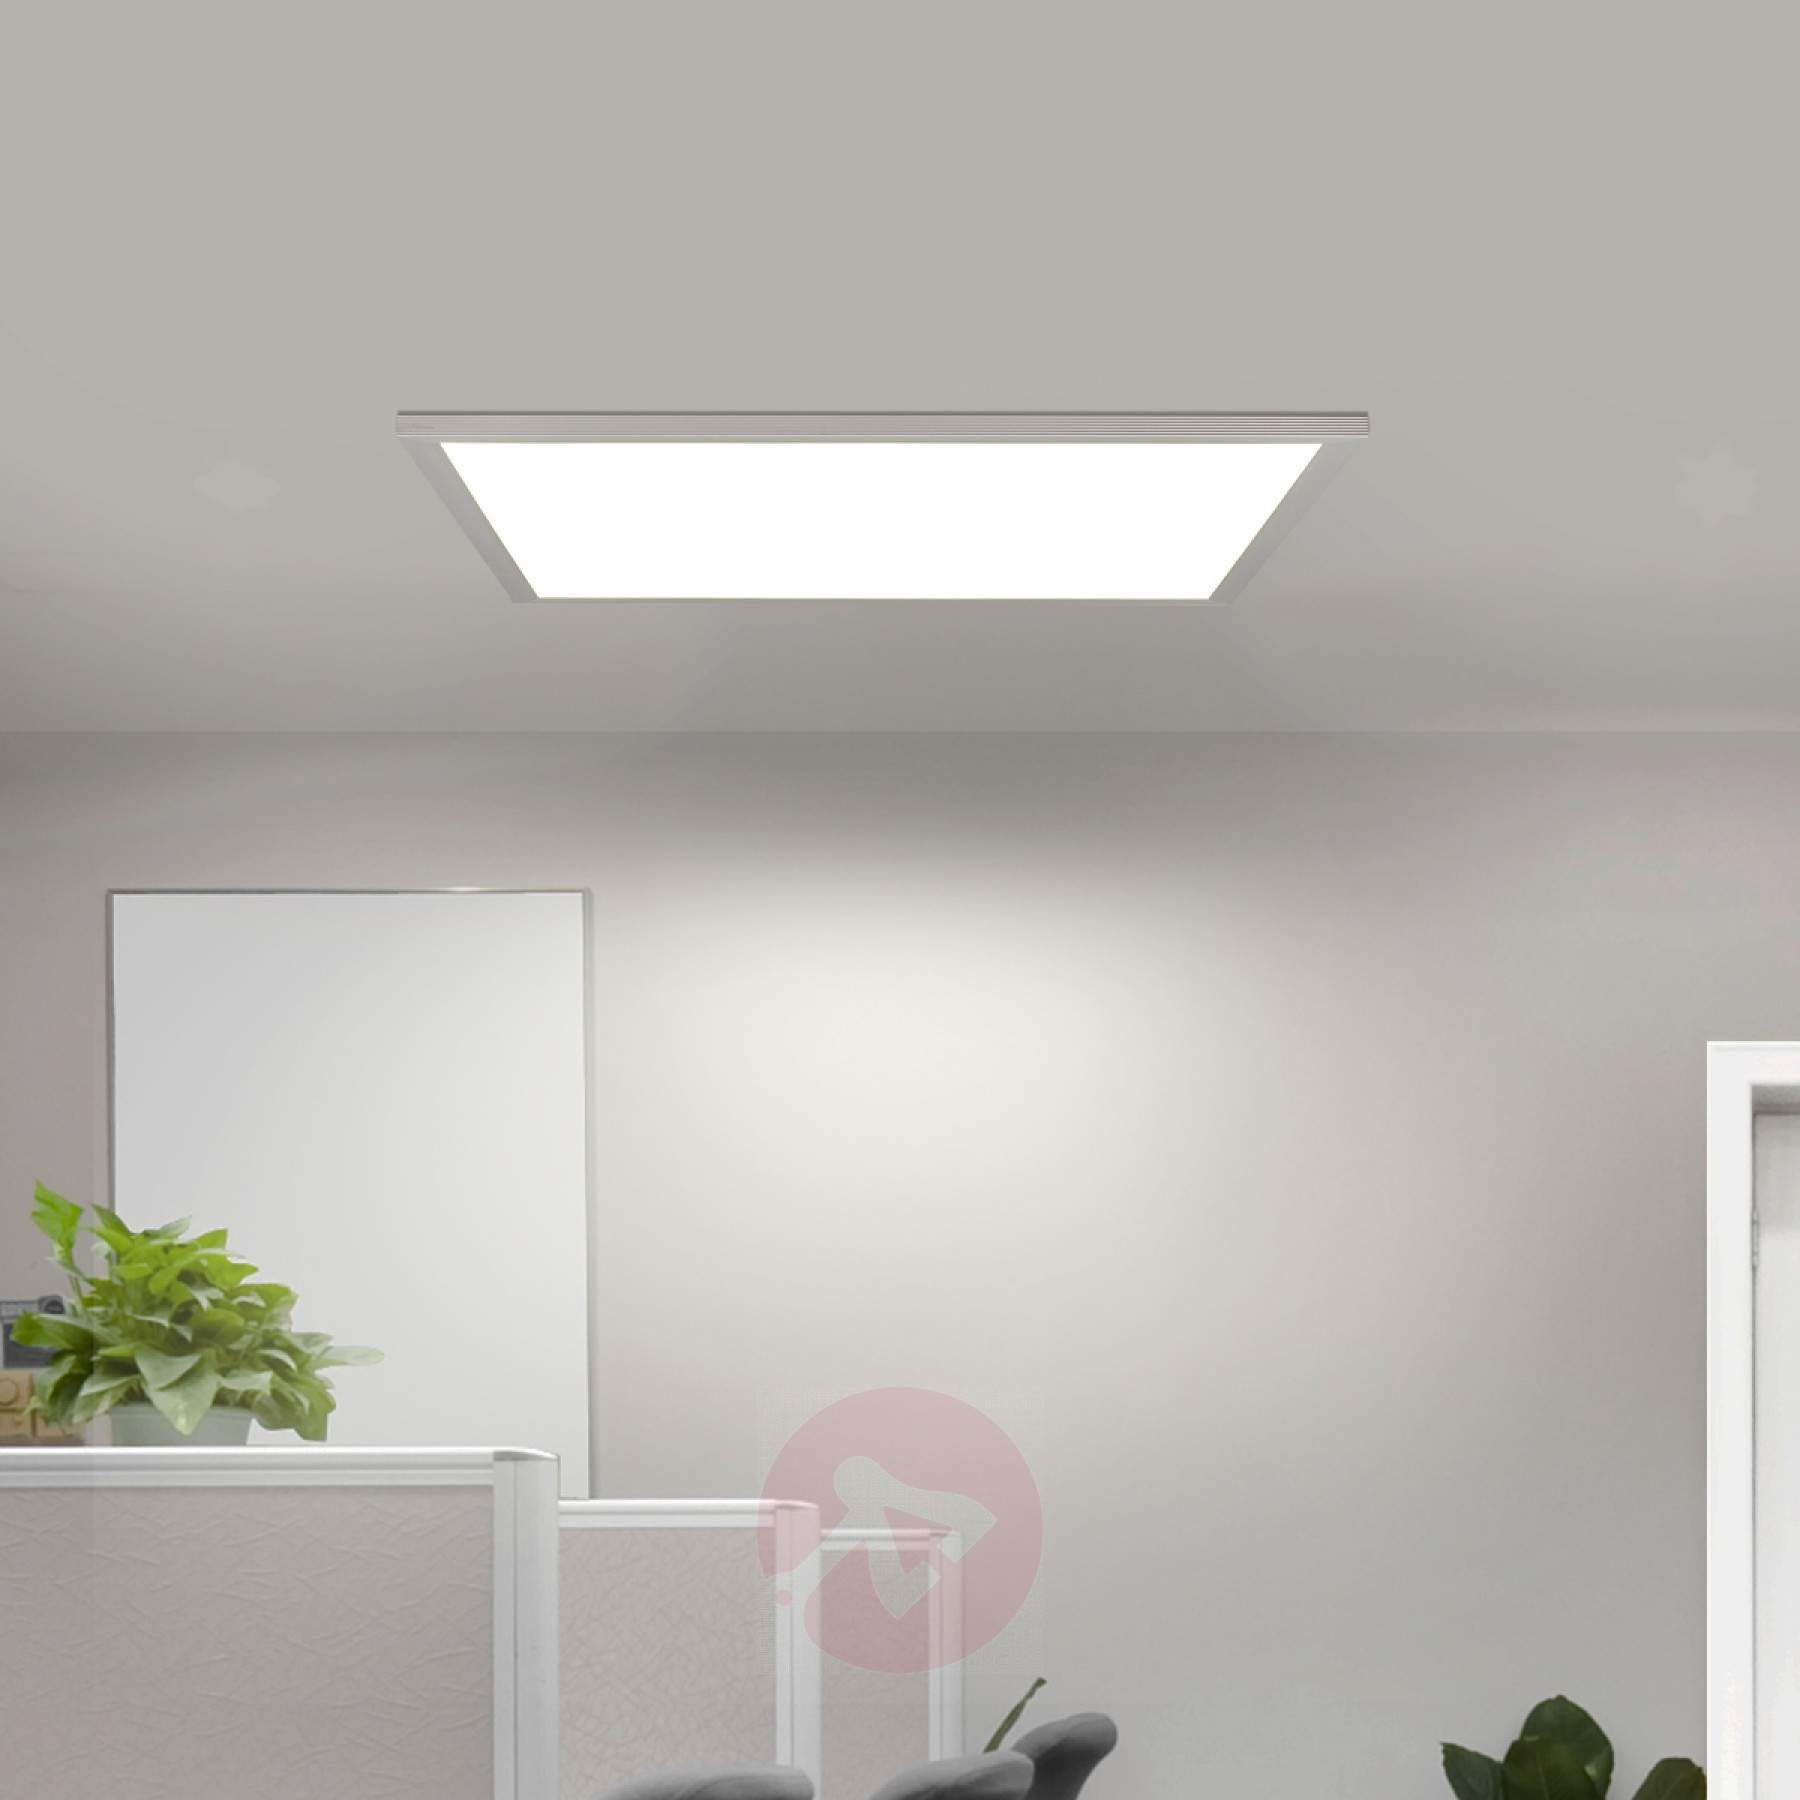 Led Panel All In One 62x62cm Mit Osram Leds Led Beleuchtung Decke Osram